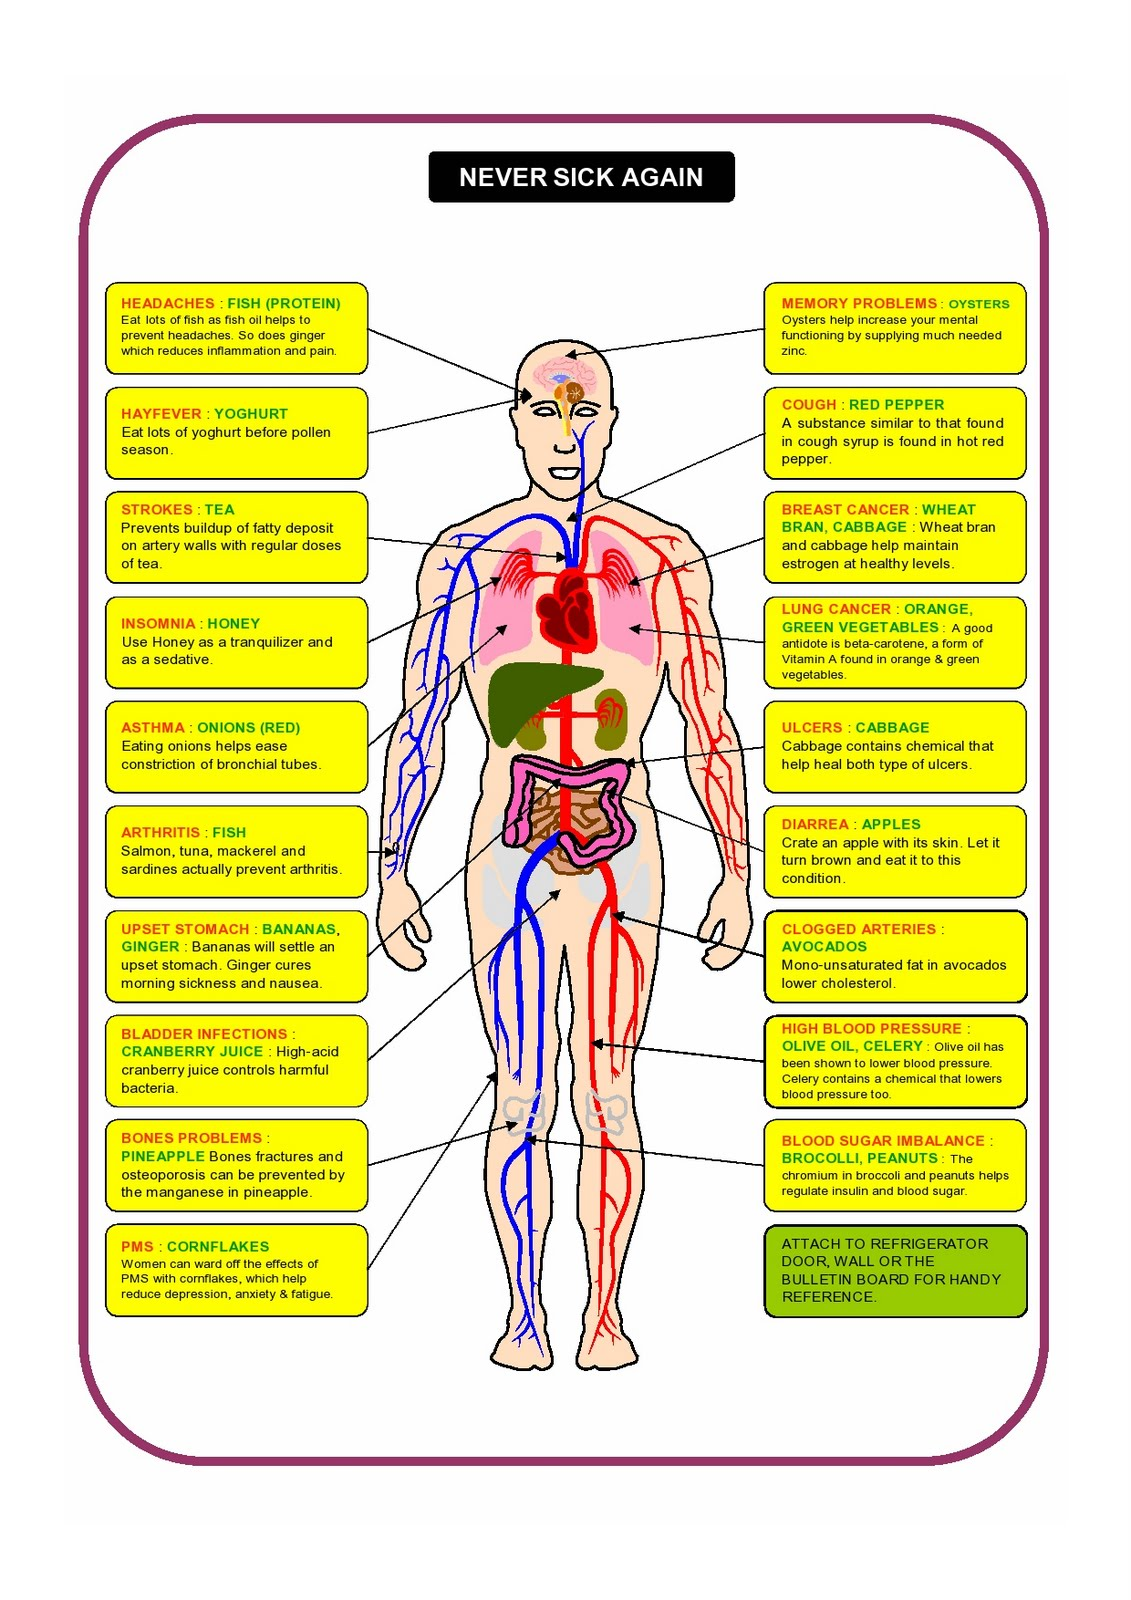 small resolution of never sick again chart never sick again diagram health care tips health facts